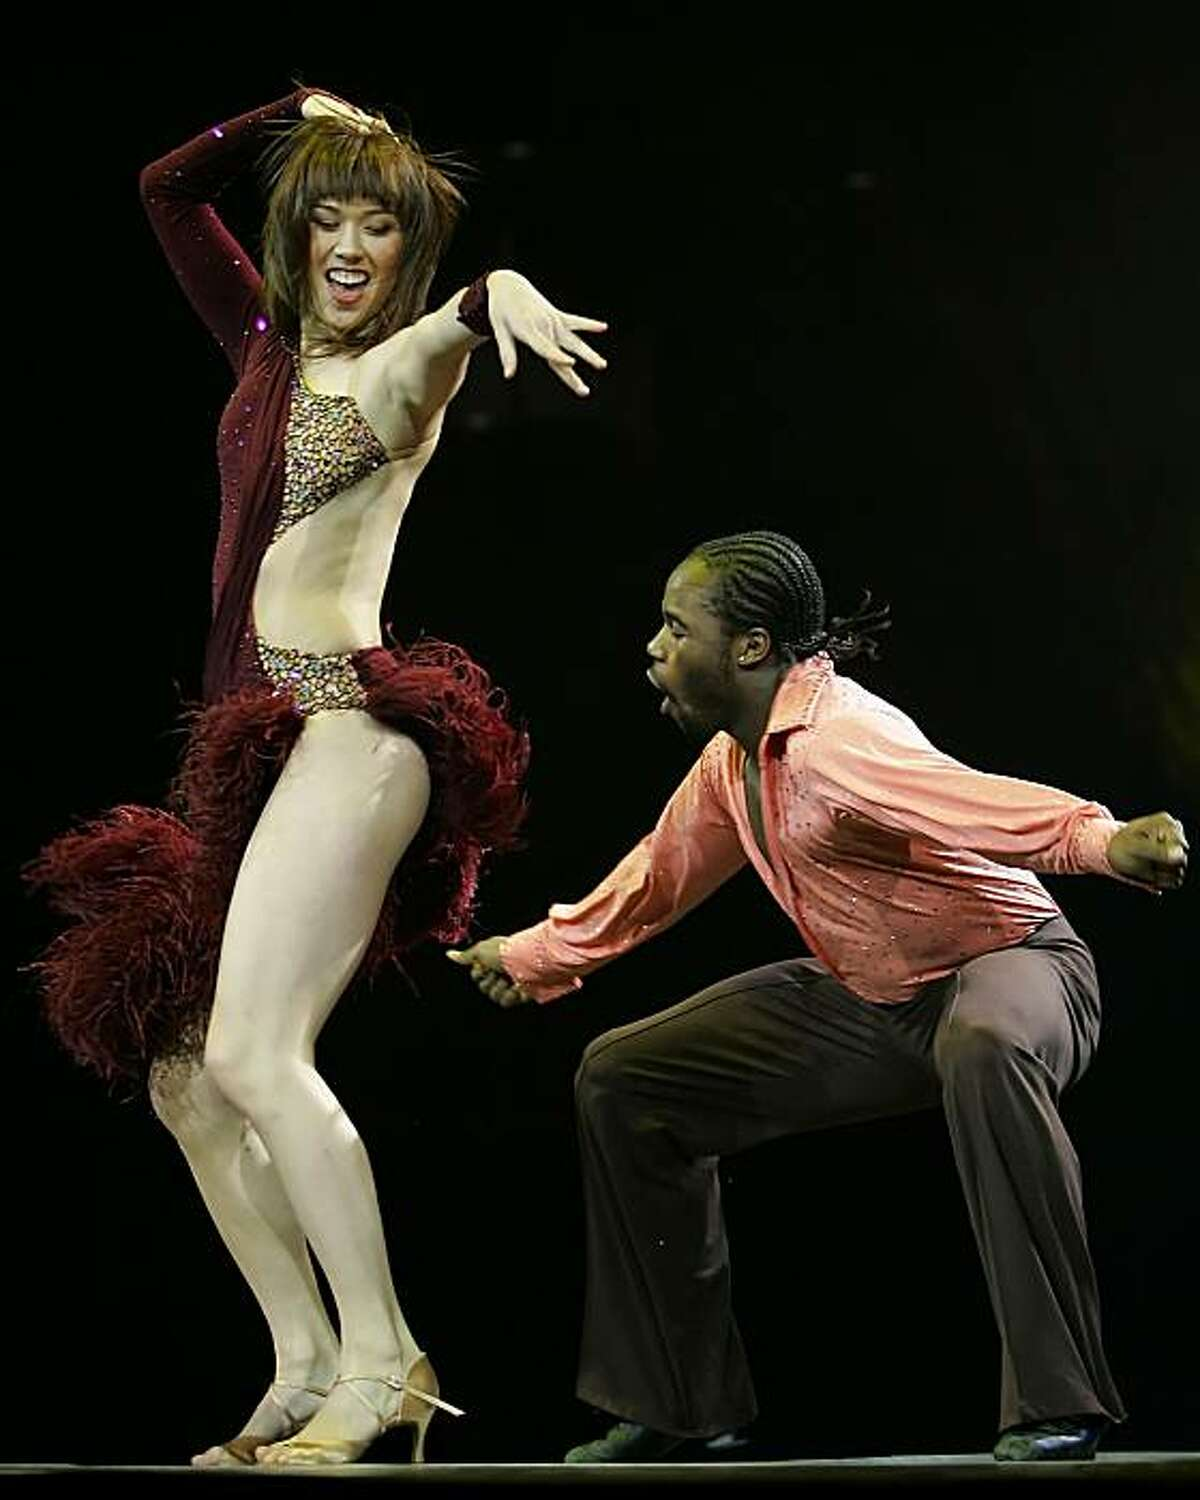 Katee Shean, left, and Joshua Allen, right, performs a Samba dance during the popular FOX reality series So You Think You Can Dance tour performance at HP Pavilion in San Jose, Calif., on Thursday, Sept. 25, 2008.